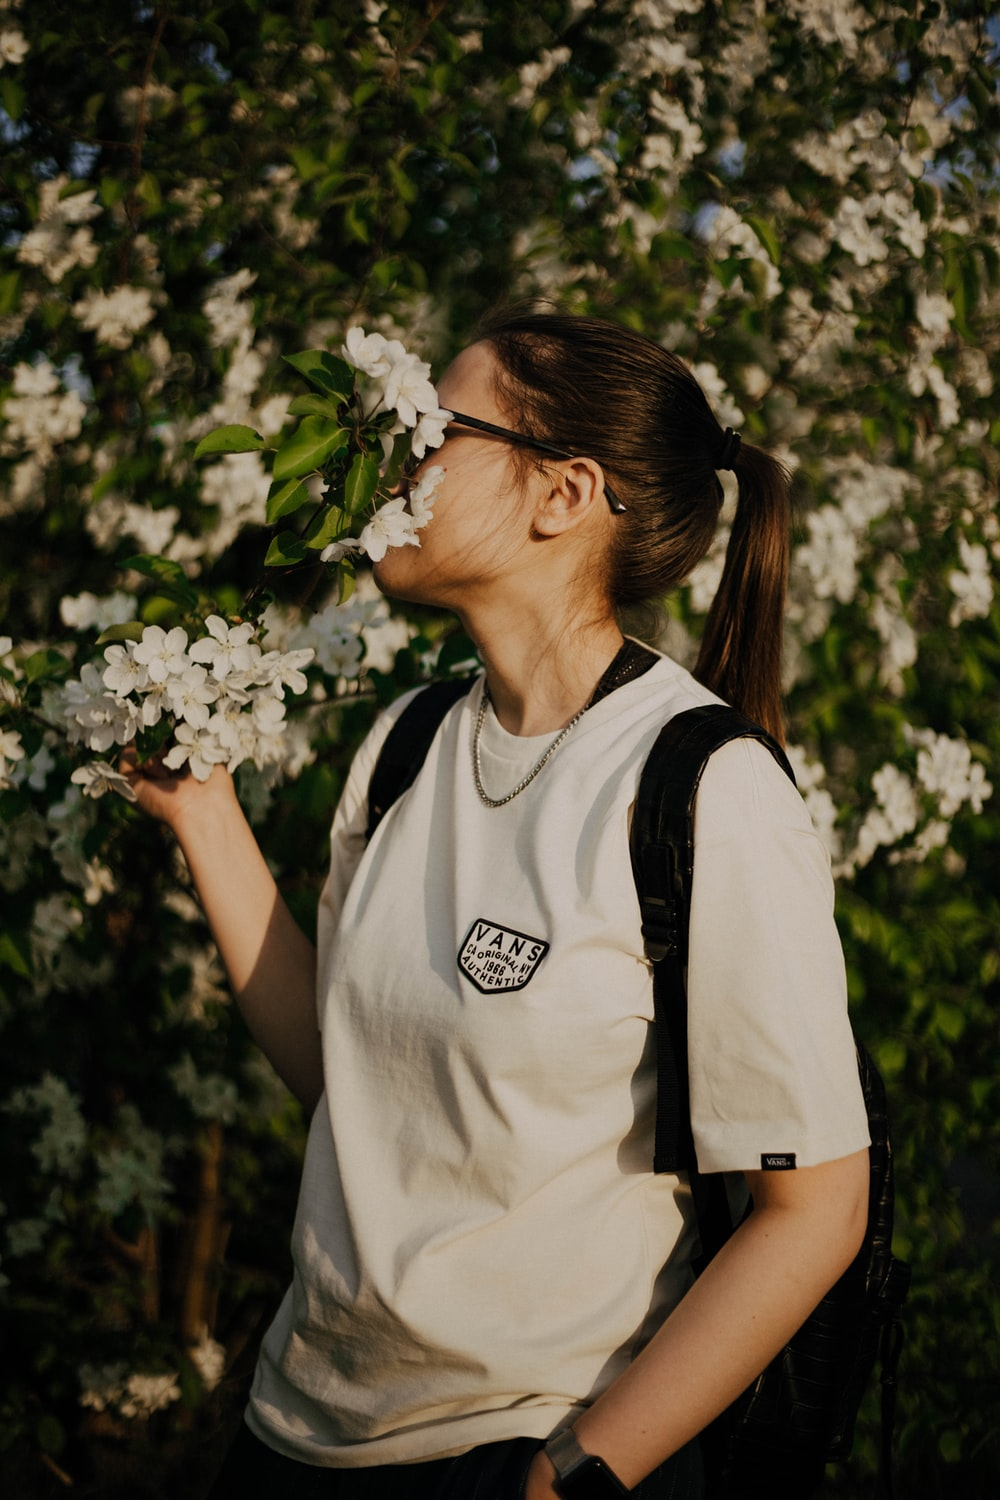 woman in white and black crew neck t-shirt holding white flowers